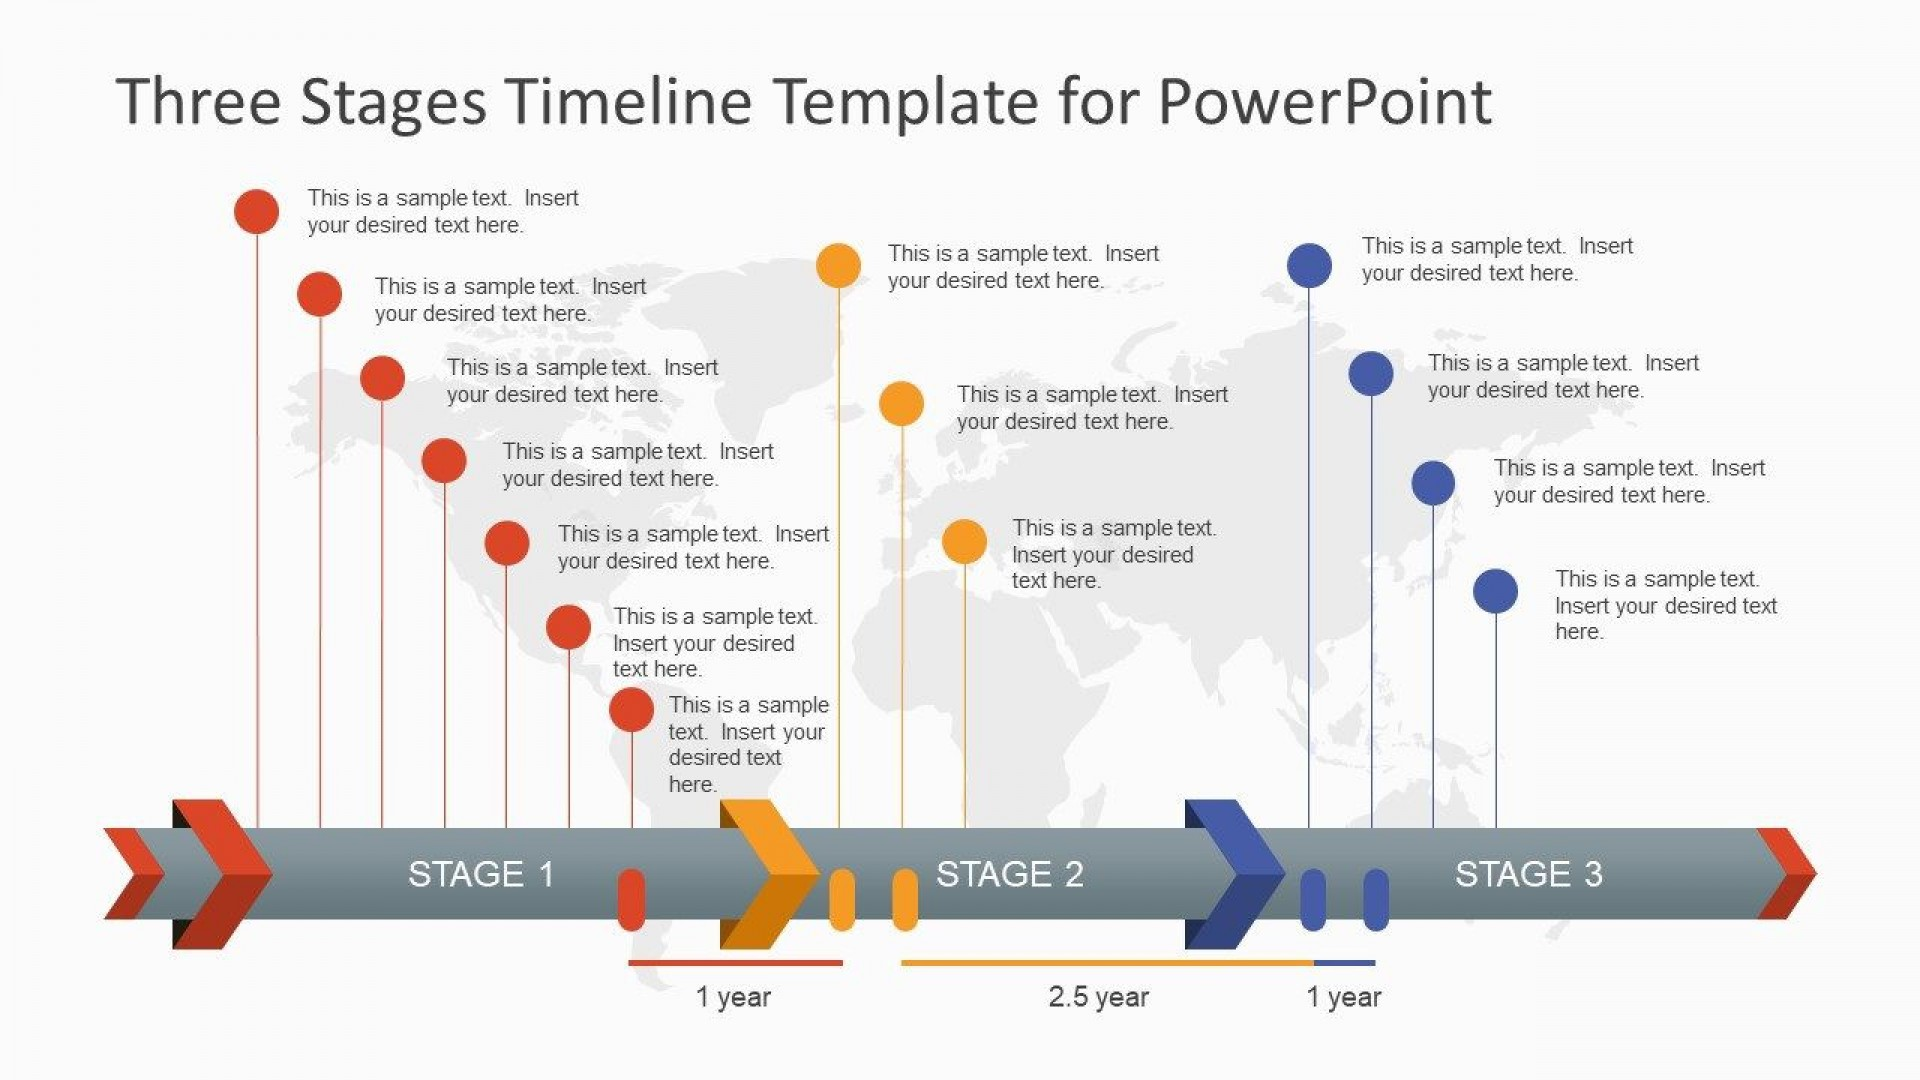 004 Stunning Timeline Template Pptx Photo  Powerpoint Project1920